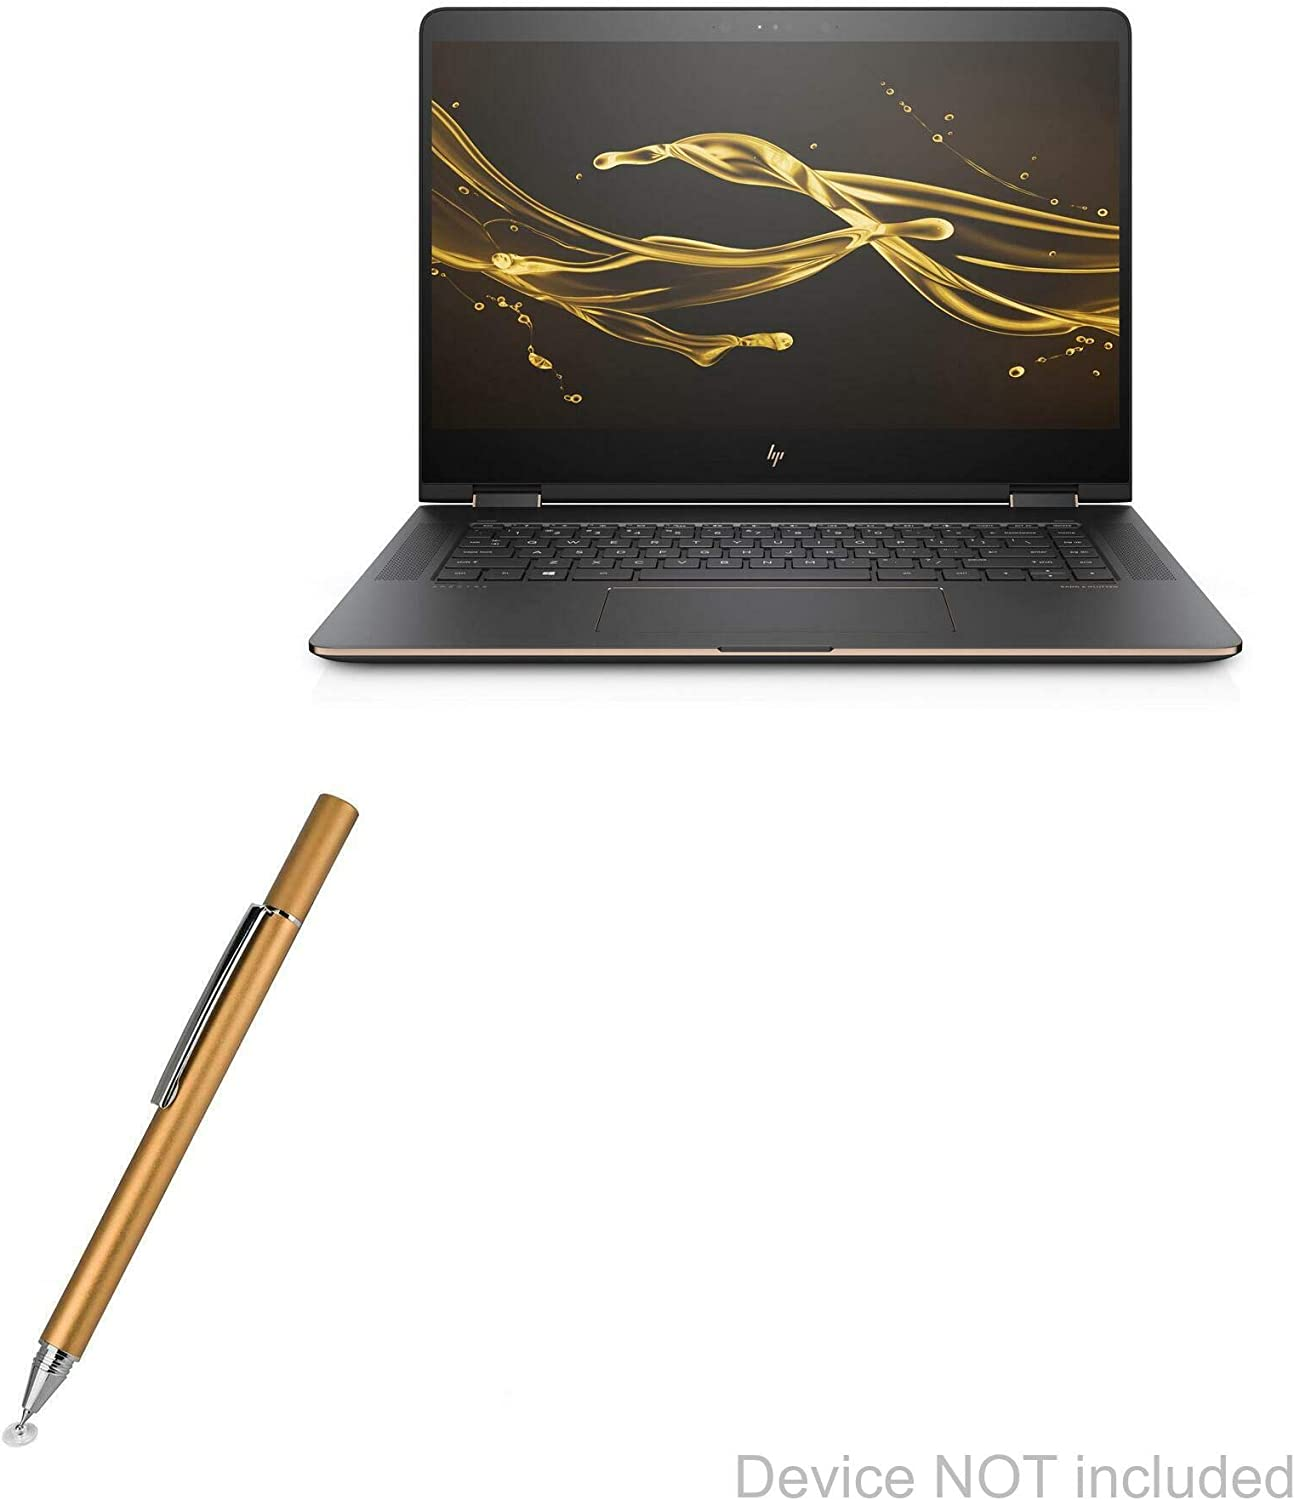 HP Spectre X360 Stylus Pen, BoxWave [FineTouch Capacitive Stylus] Super Precise Stylus Pen for HP Spectre X360 - Champagne Gold